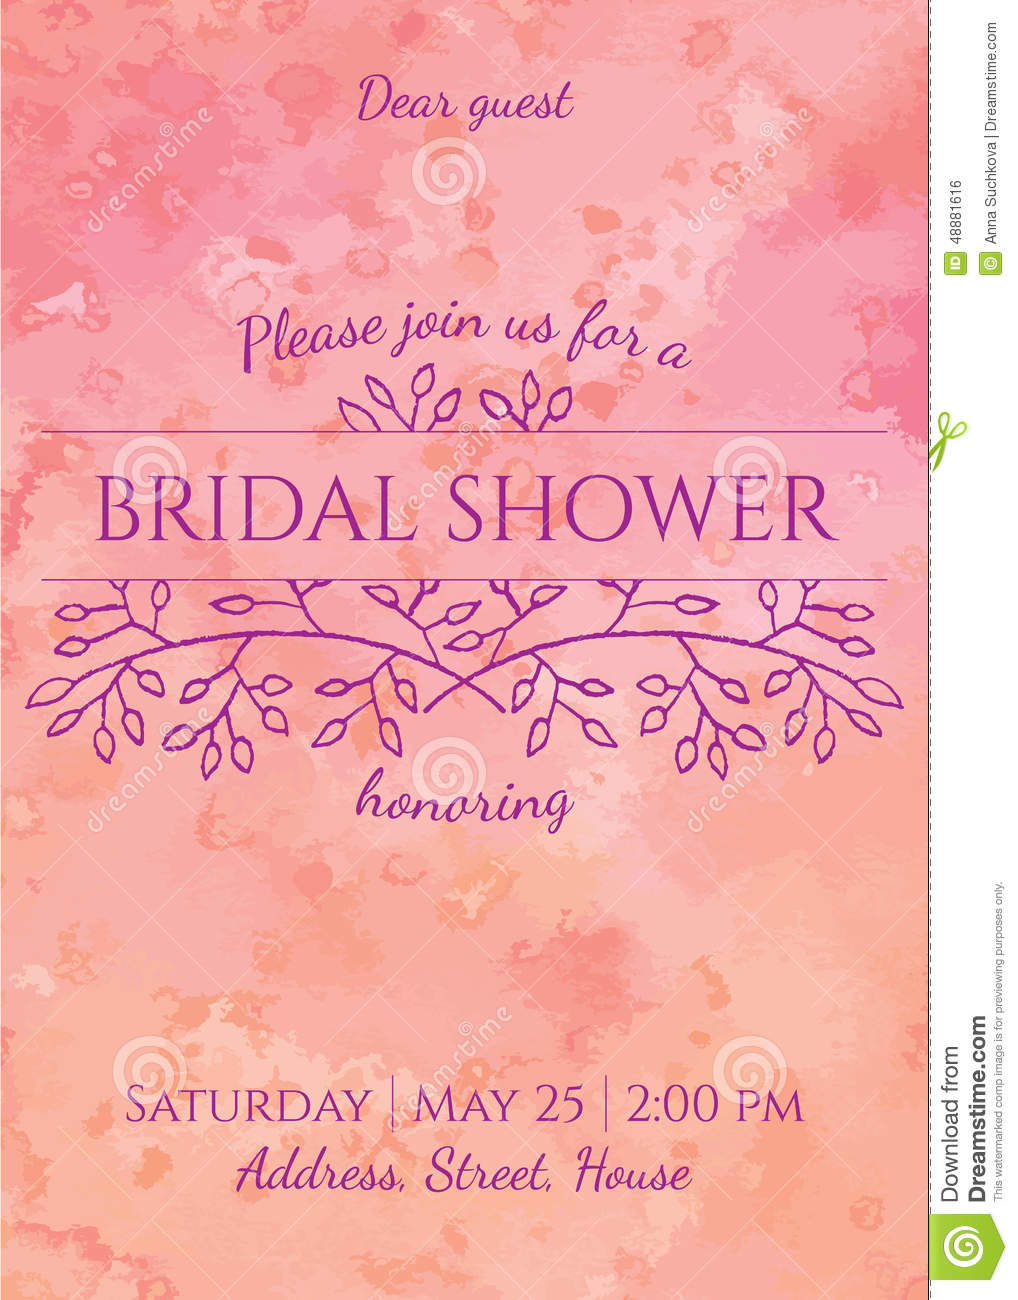 Bridal shower invitation - gentle watercolor background with hand ...